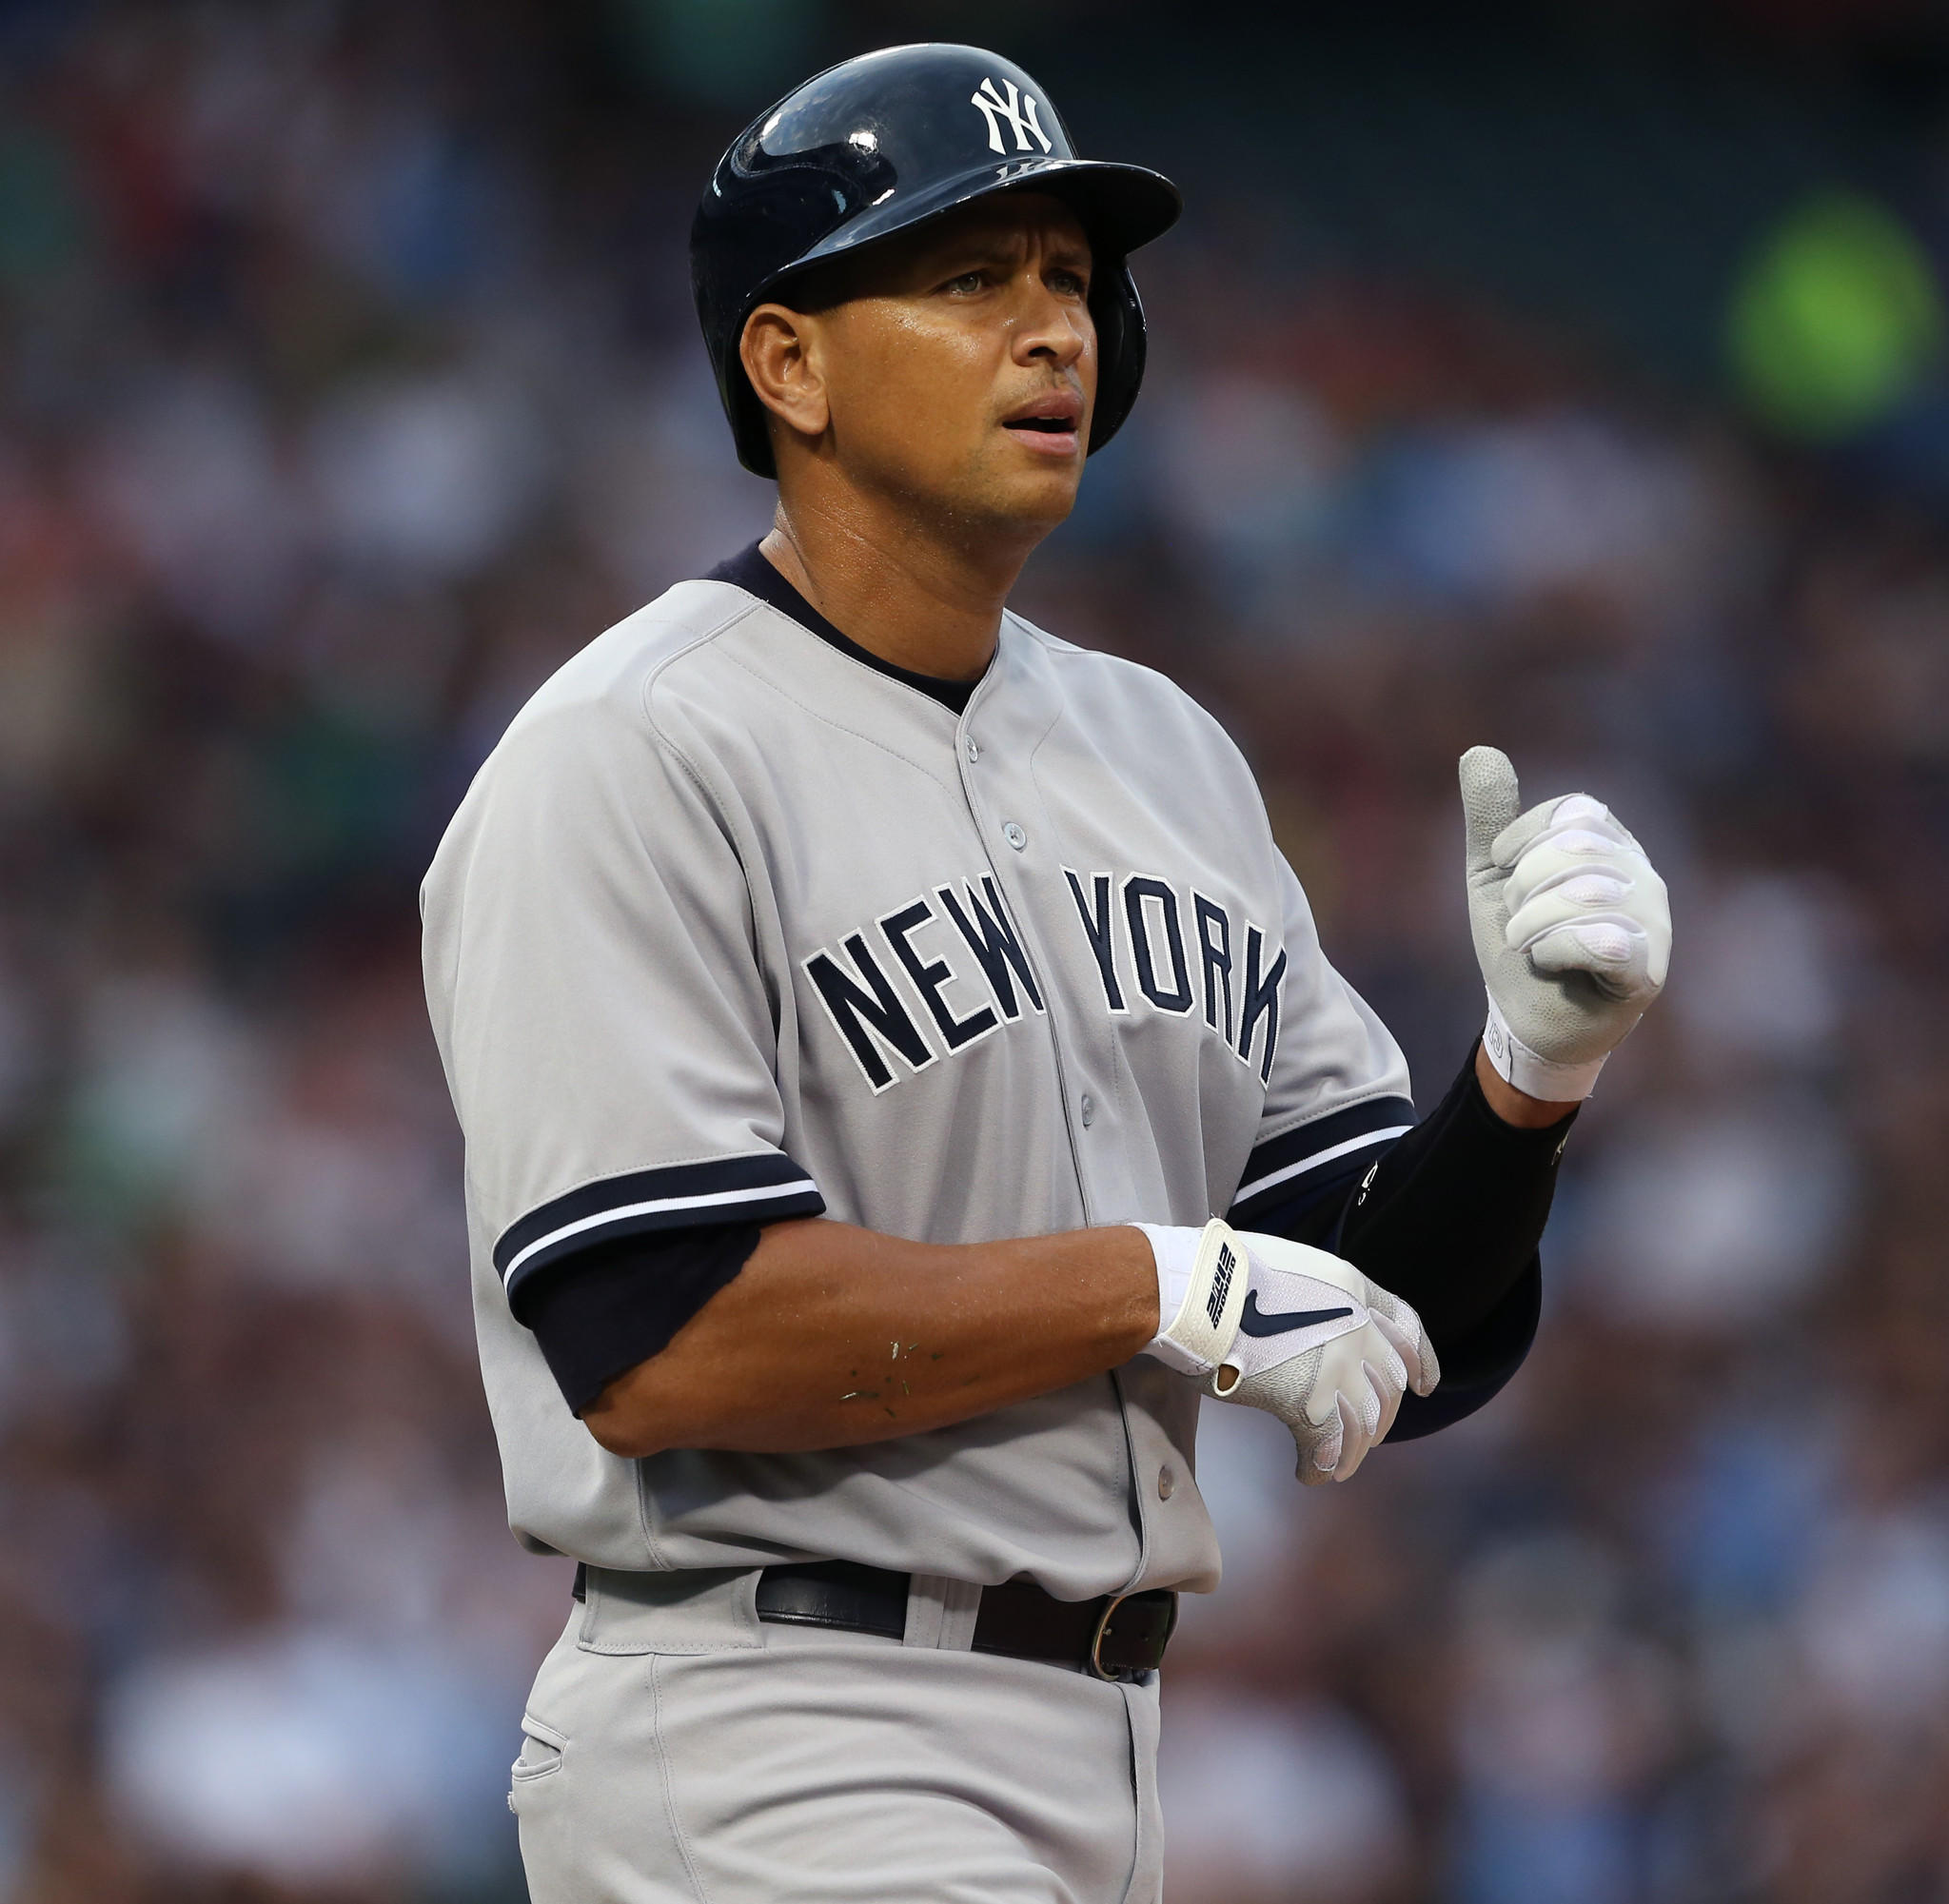 New York Yankees third baseman Alex Rodriguez (13), walks to first during the first inning of his team's game against the against the Chicago White Sox, at U.S. Cellular Field, in Chicago, on Tuesday, Aug. 6, 2013.